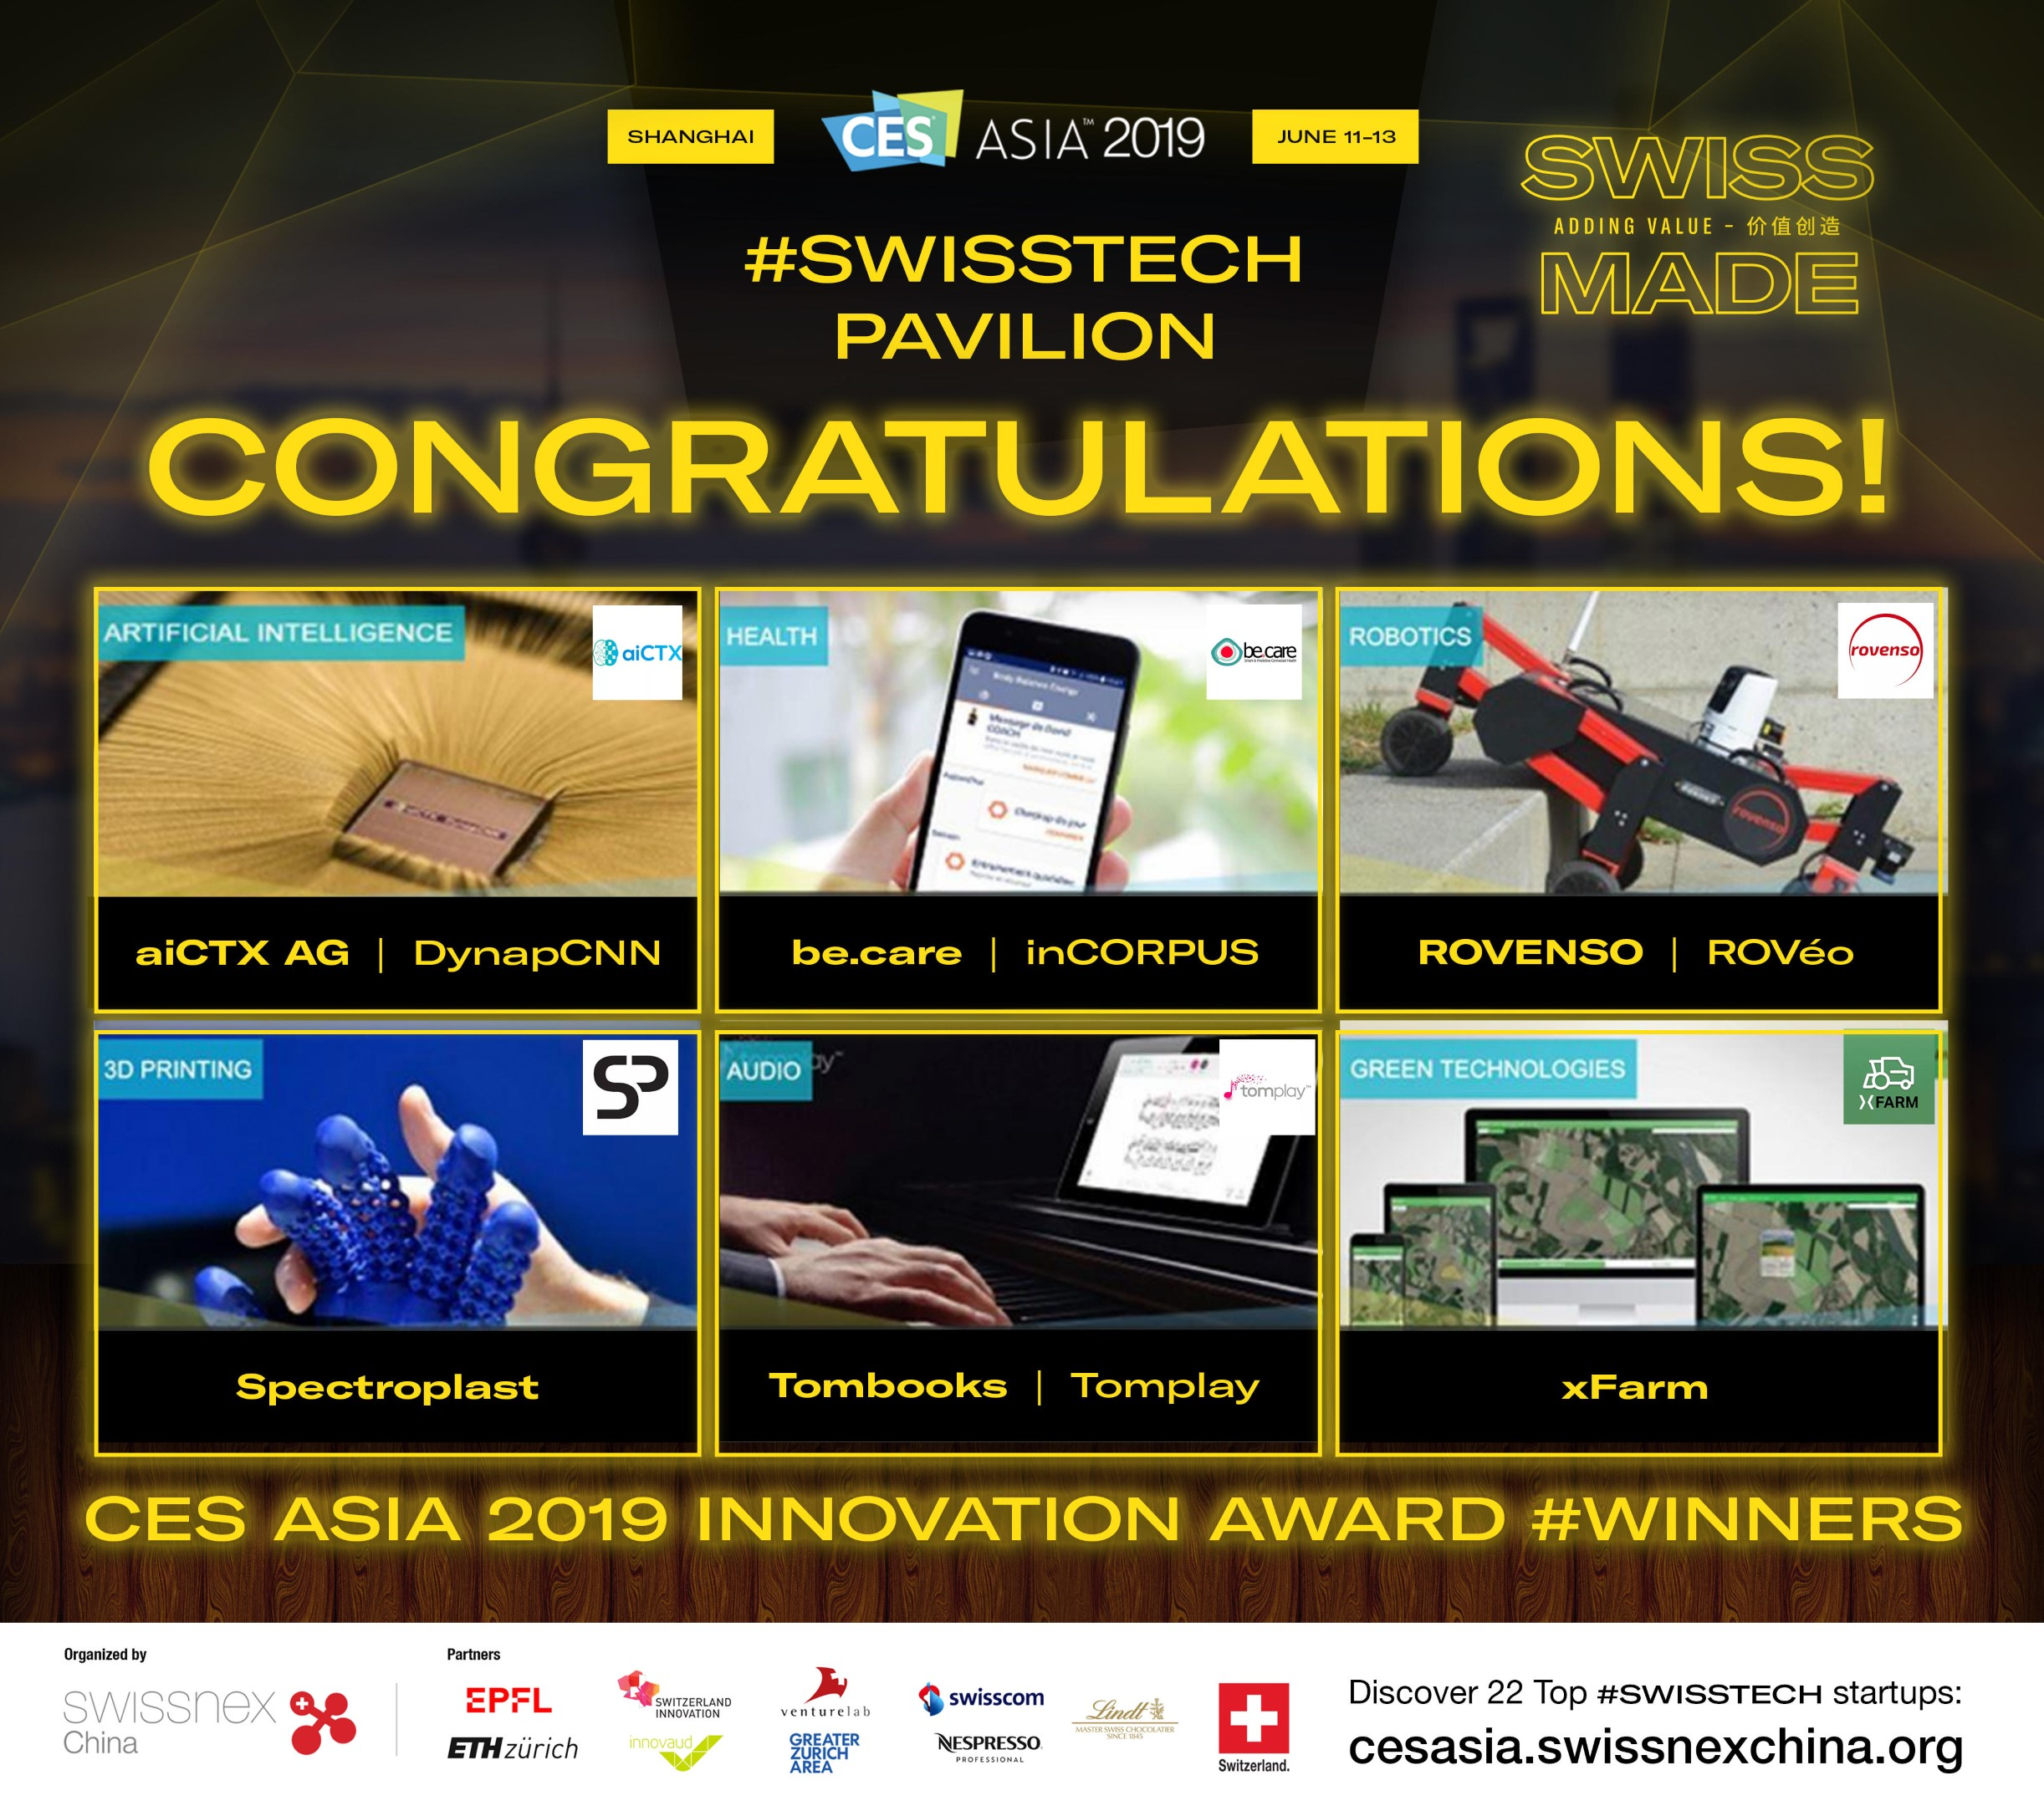 CES Asia 2019 Innovation Award #Winners